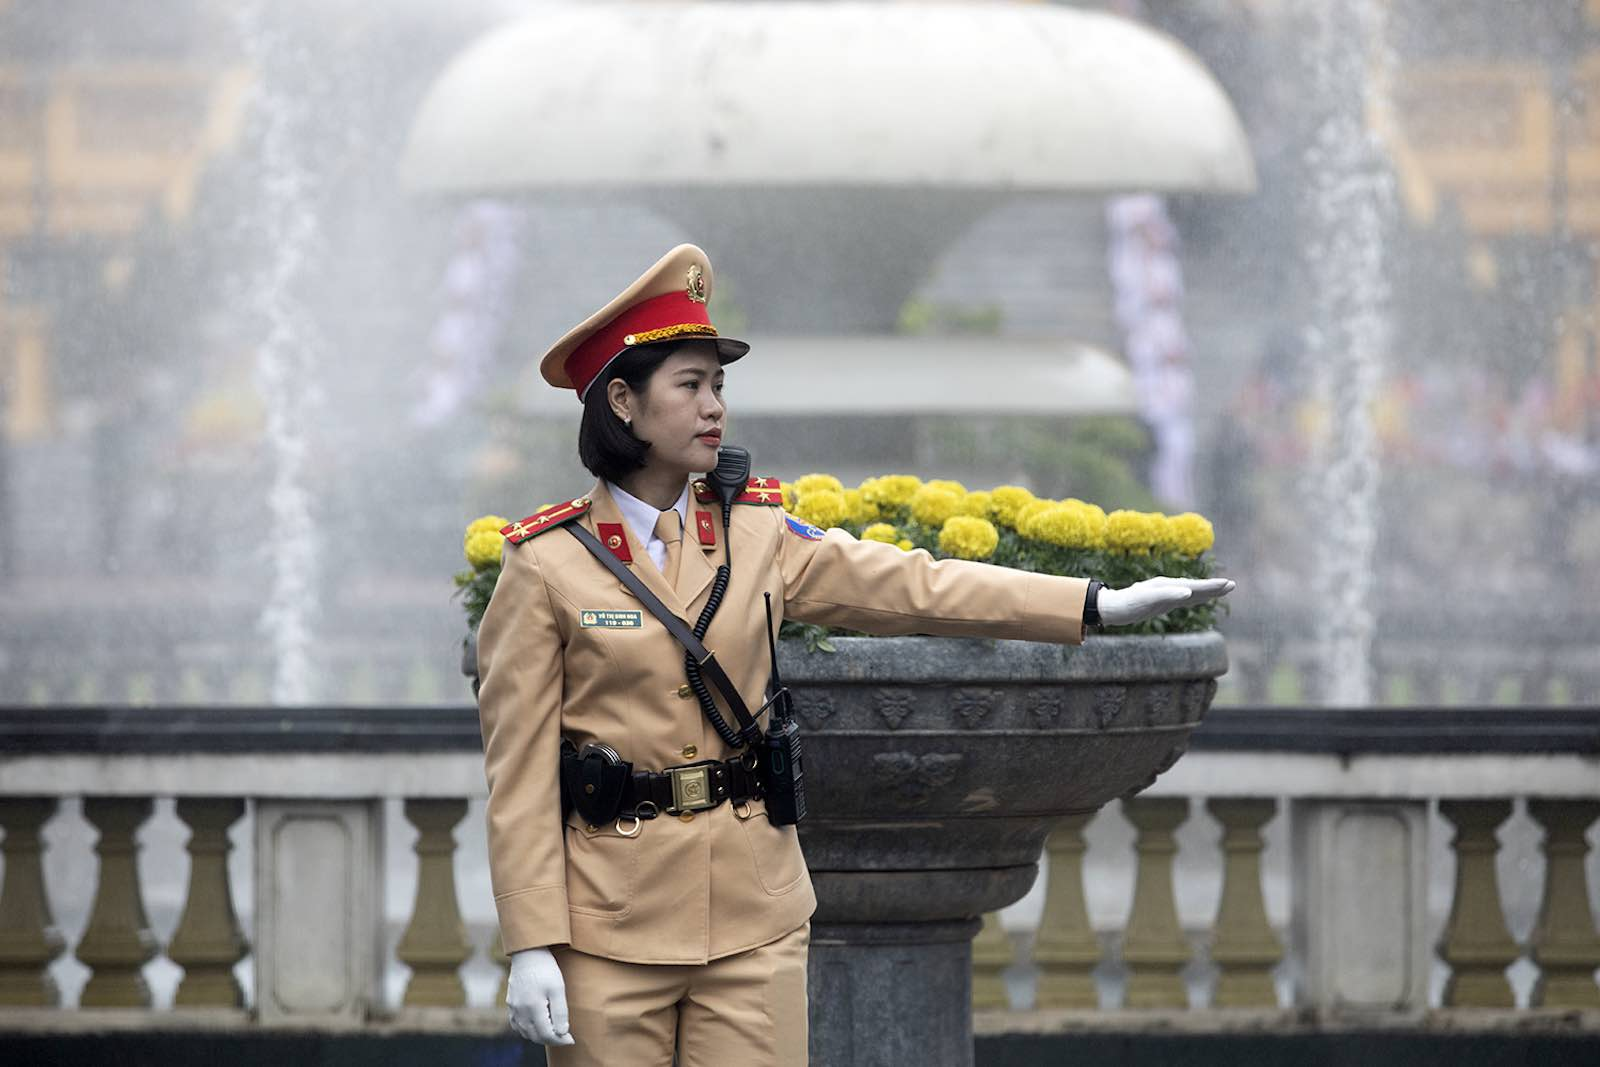 Women's employment in Vietnam's security sector is limited and affects the state's ability to respond to women's security needs (Photo: White House/Flickr)